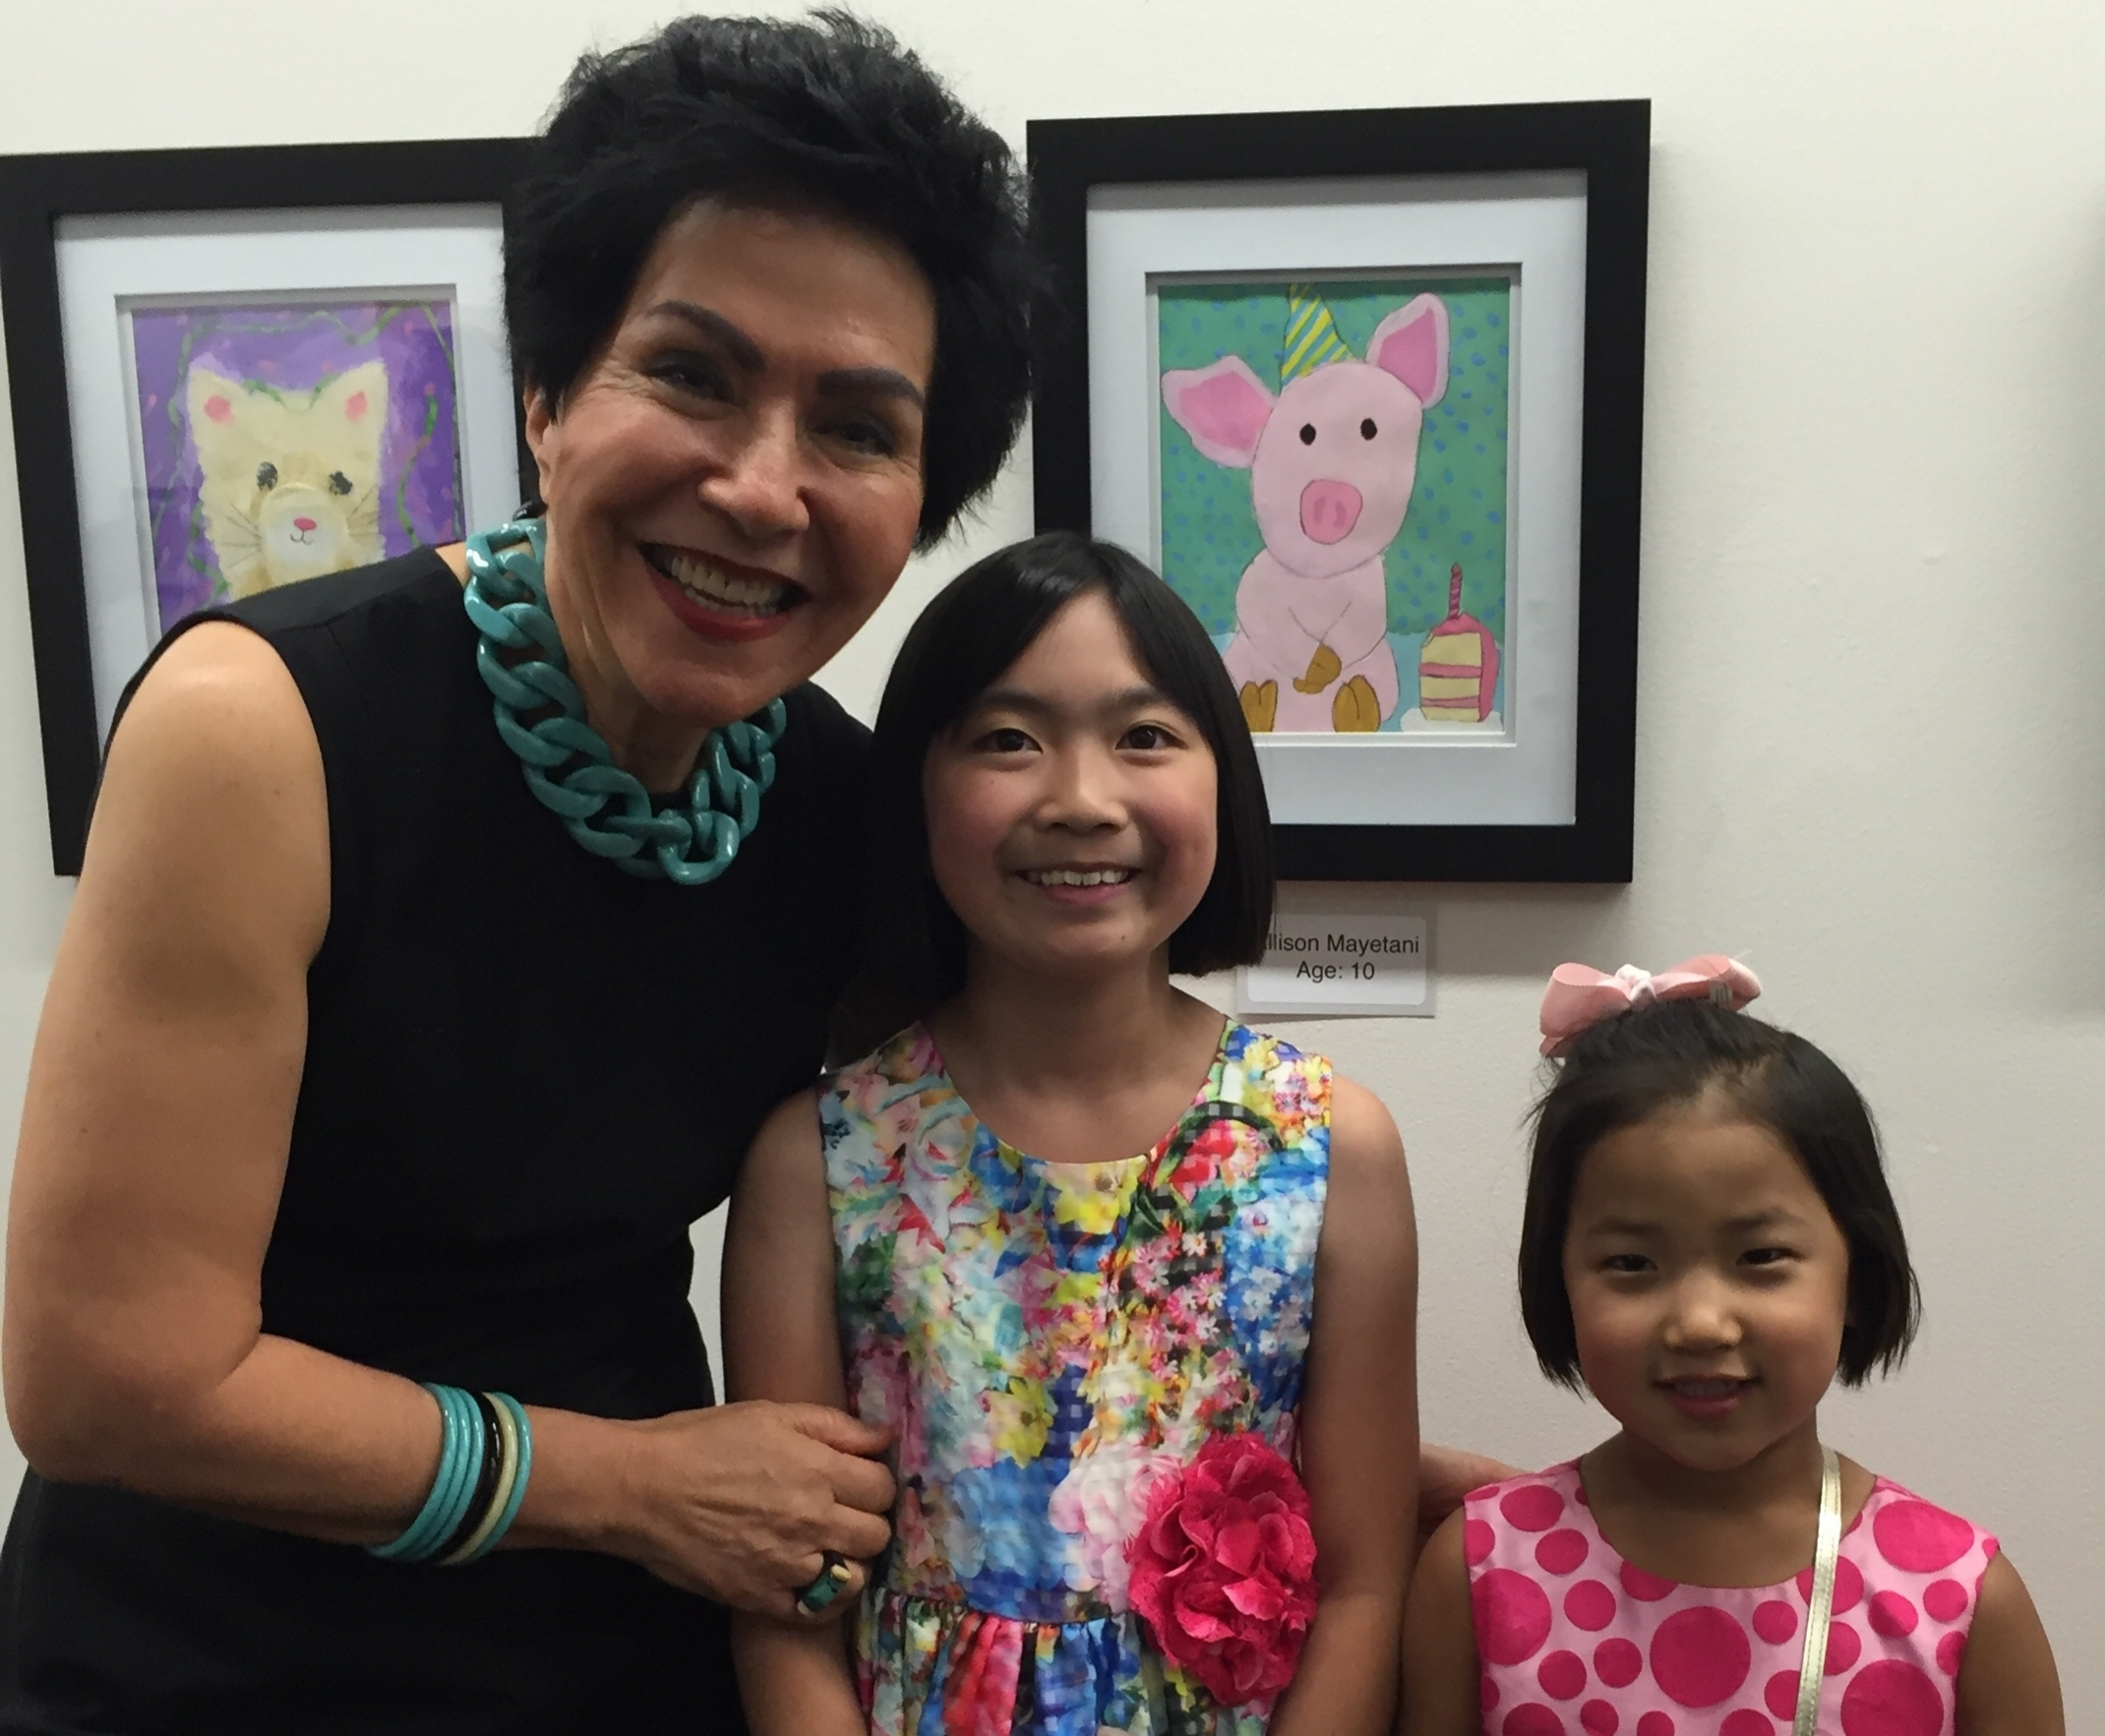 Fahimeh with her students at the Salt Lake City library, where she exhibits their artwork each year